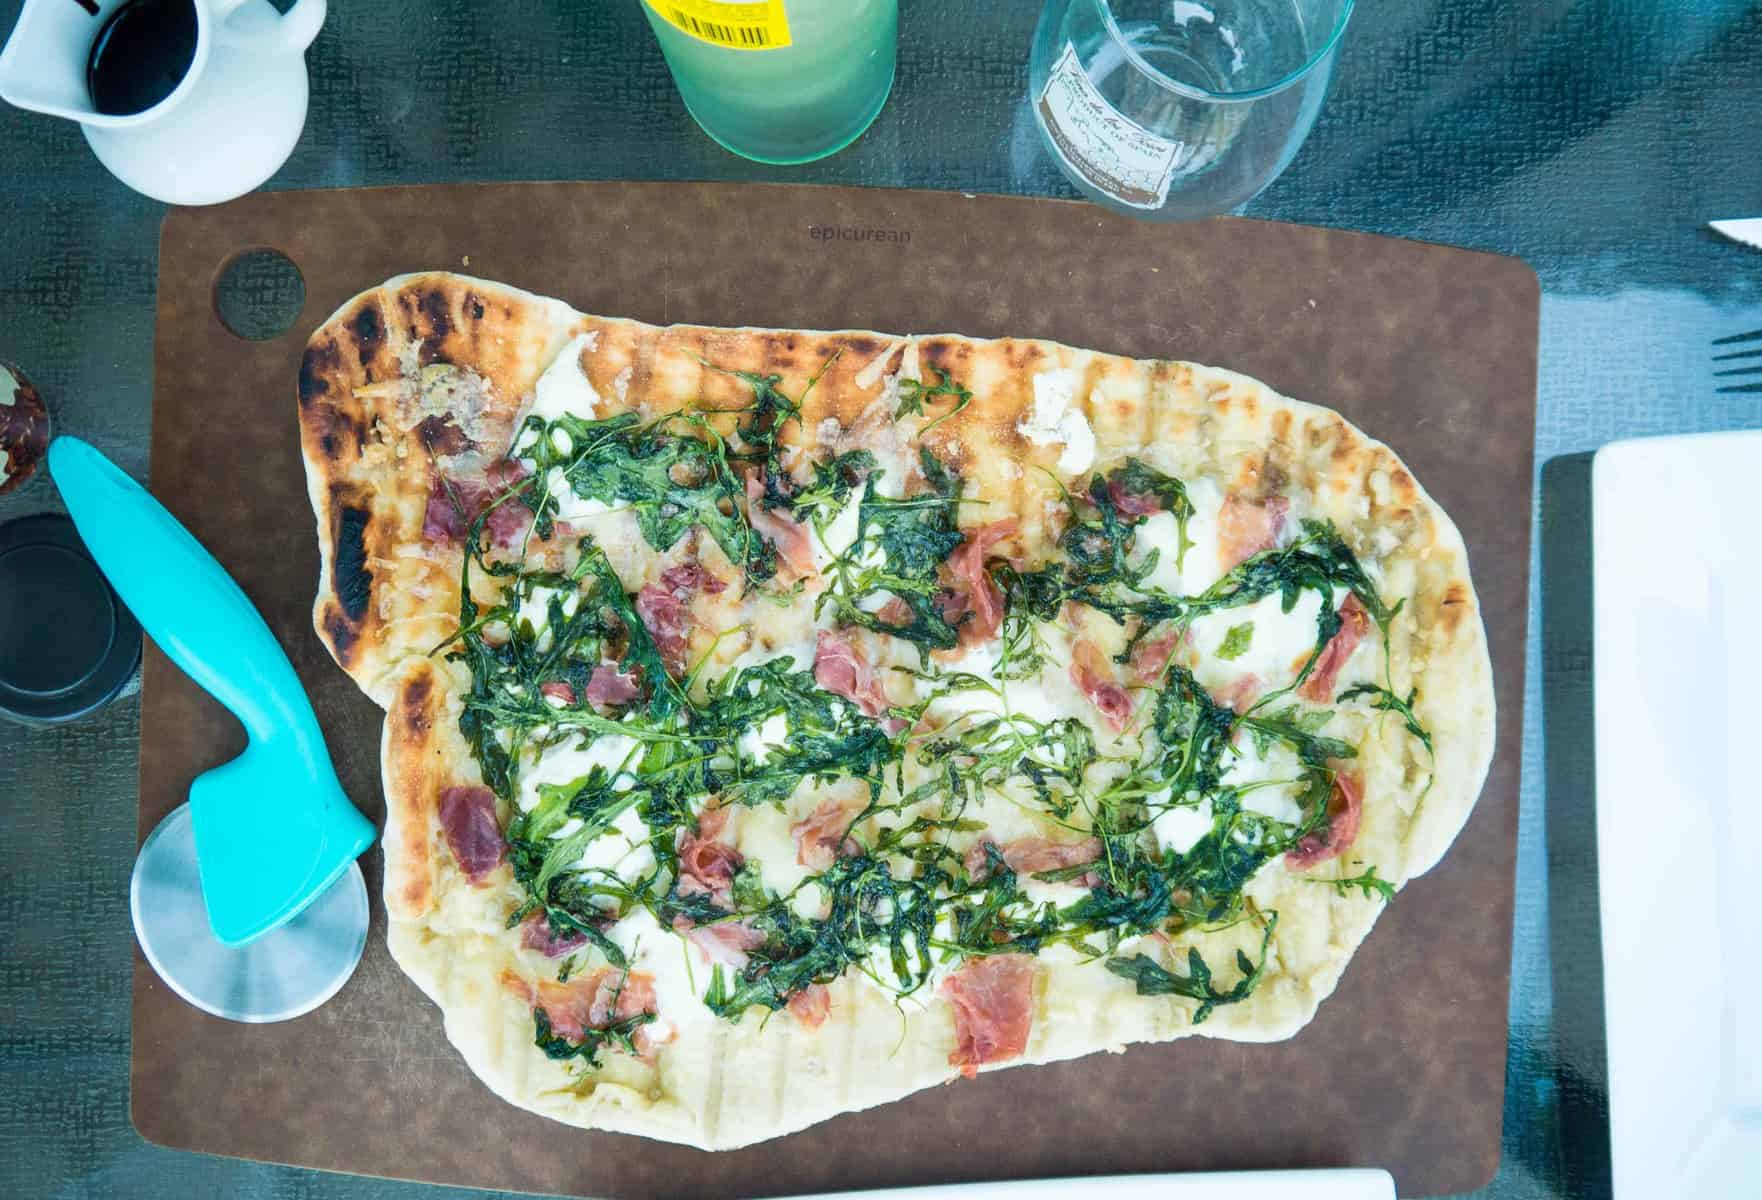 Grilled Prosciutto and Garlic Ricotta Pizza with Arugula and Balsamic Glaze